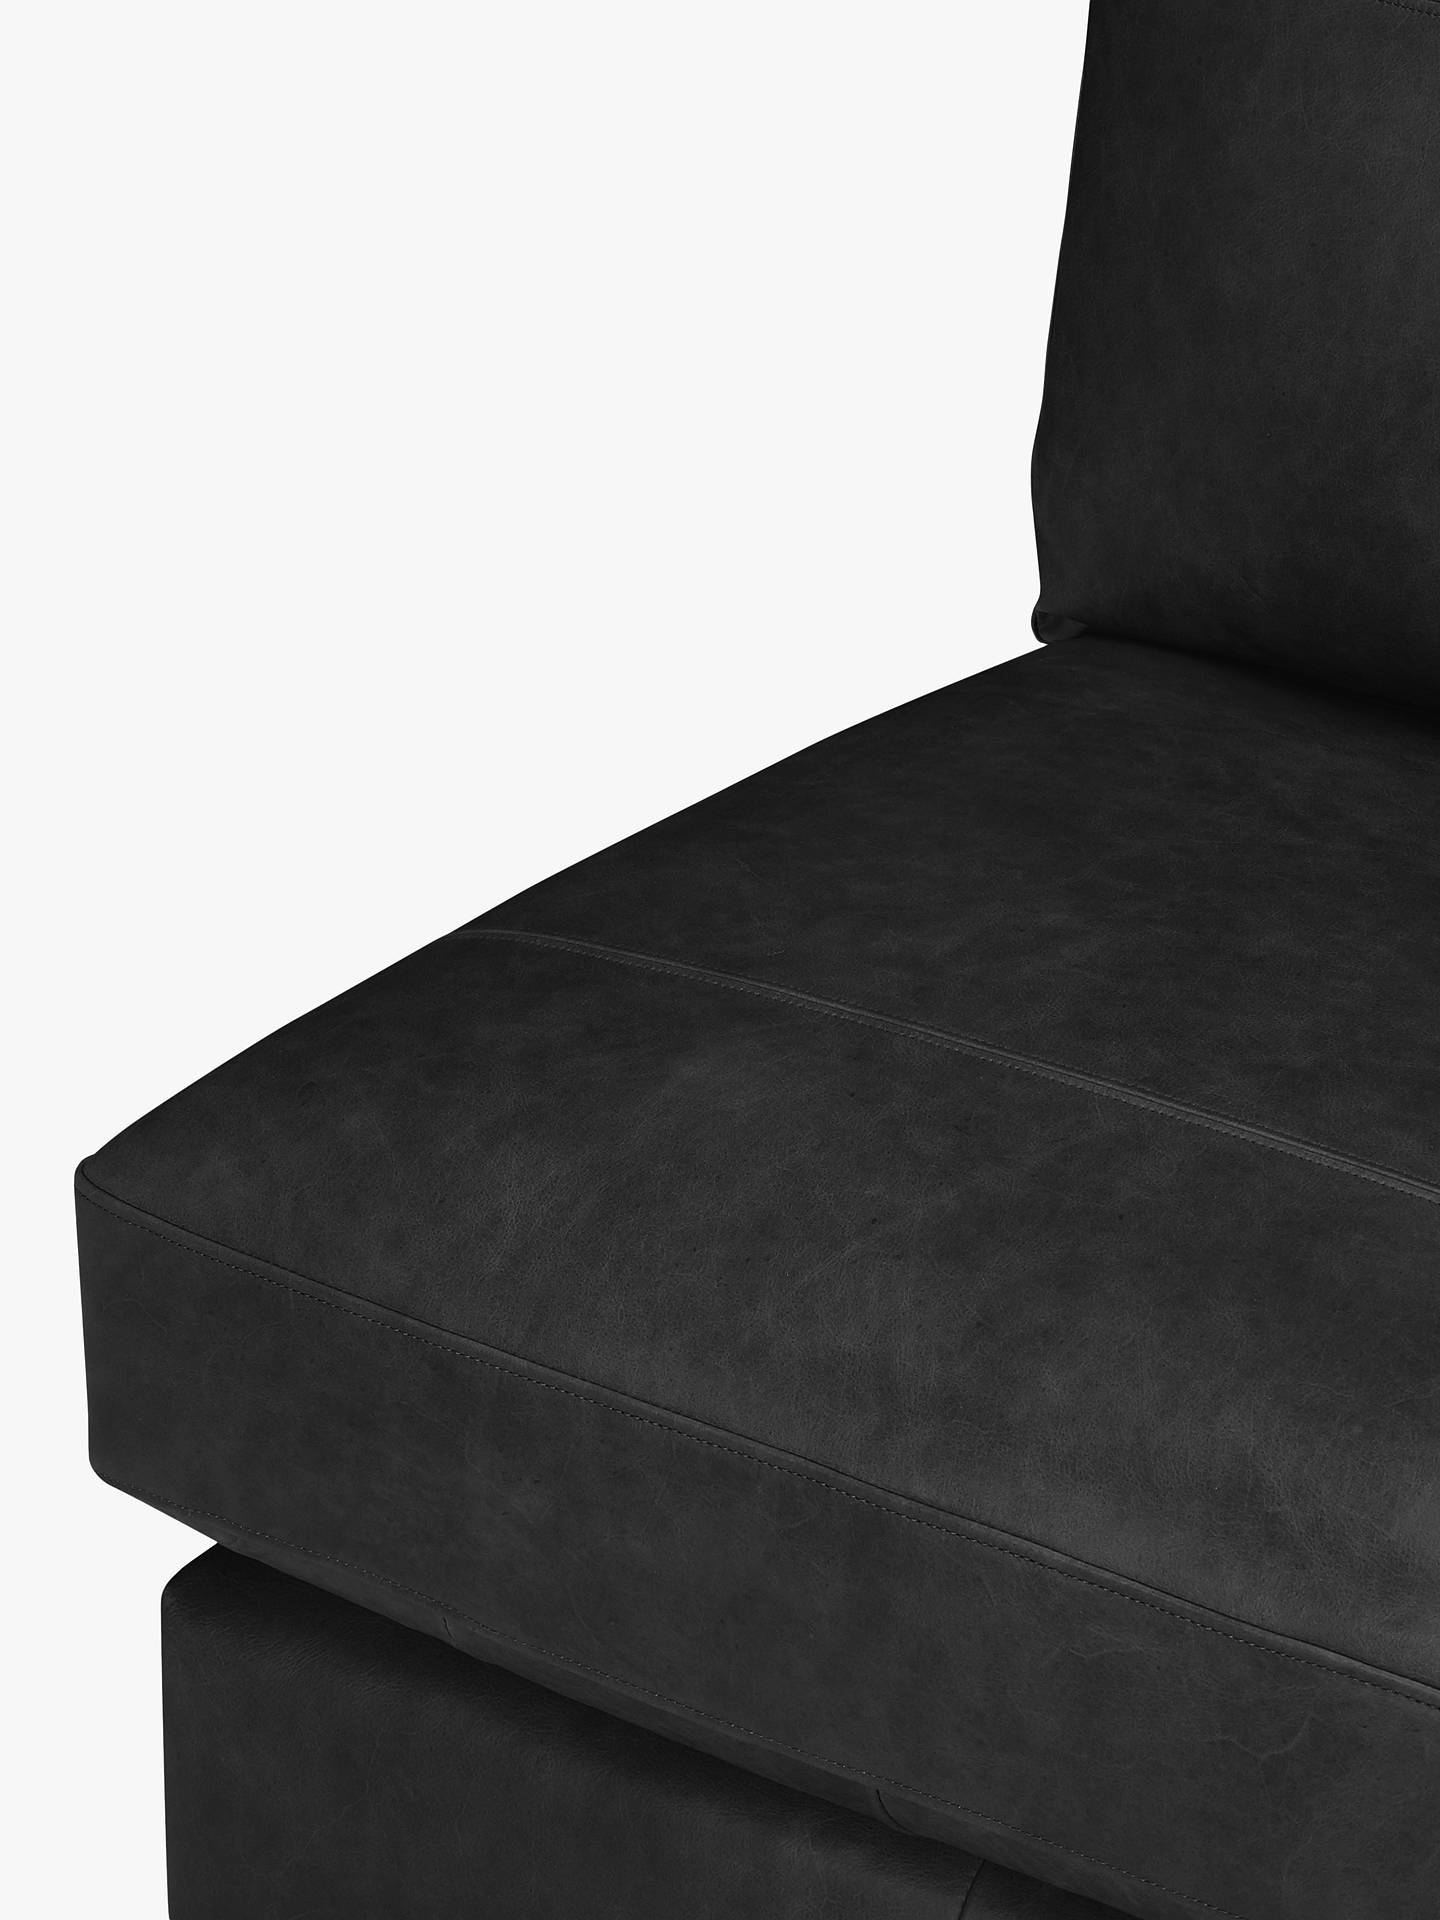 Buy House by John Lewis Oliver Leather Modular Armless Chair Unit, Dark Leg, Contempo Black Online at johnlewis.com